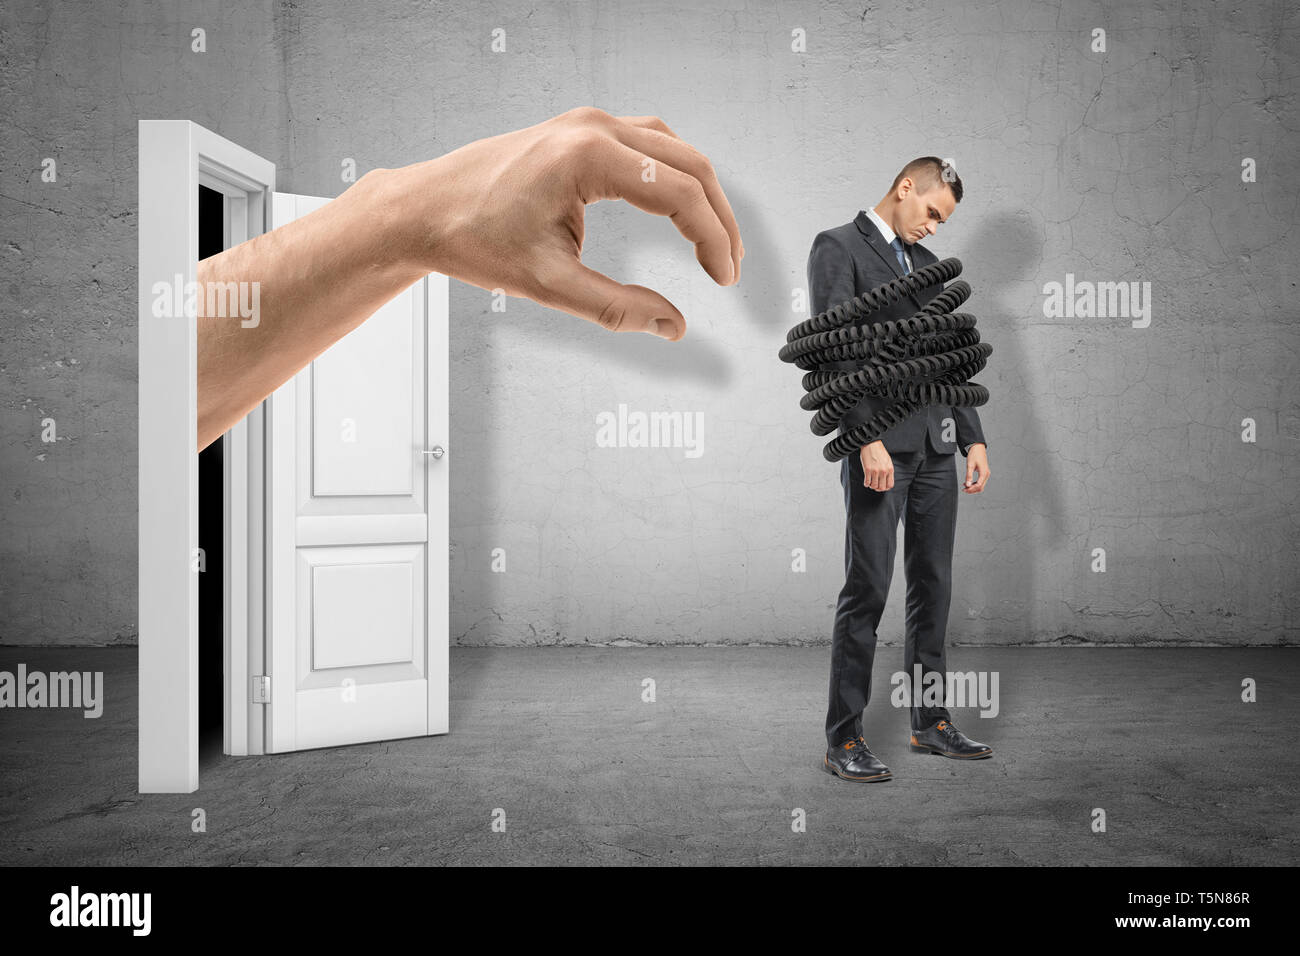 Big hand reaching to young sad businessman tied up with telephone cord on grey wall background - Stock Image